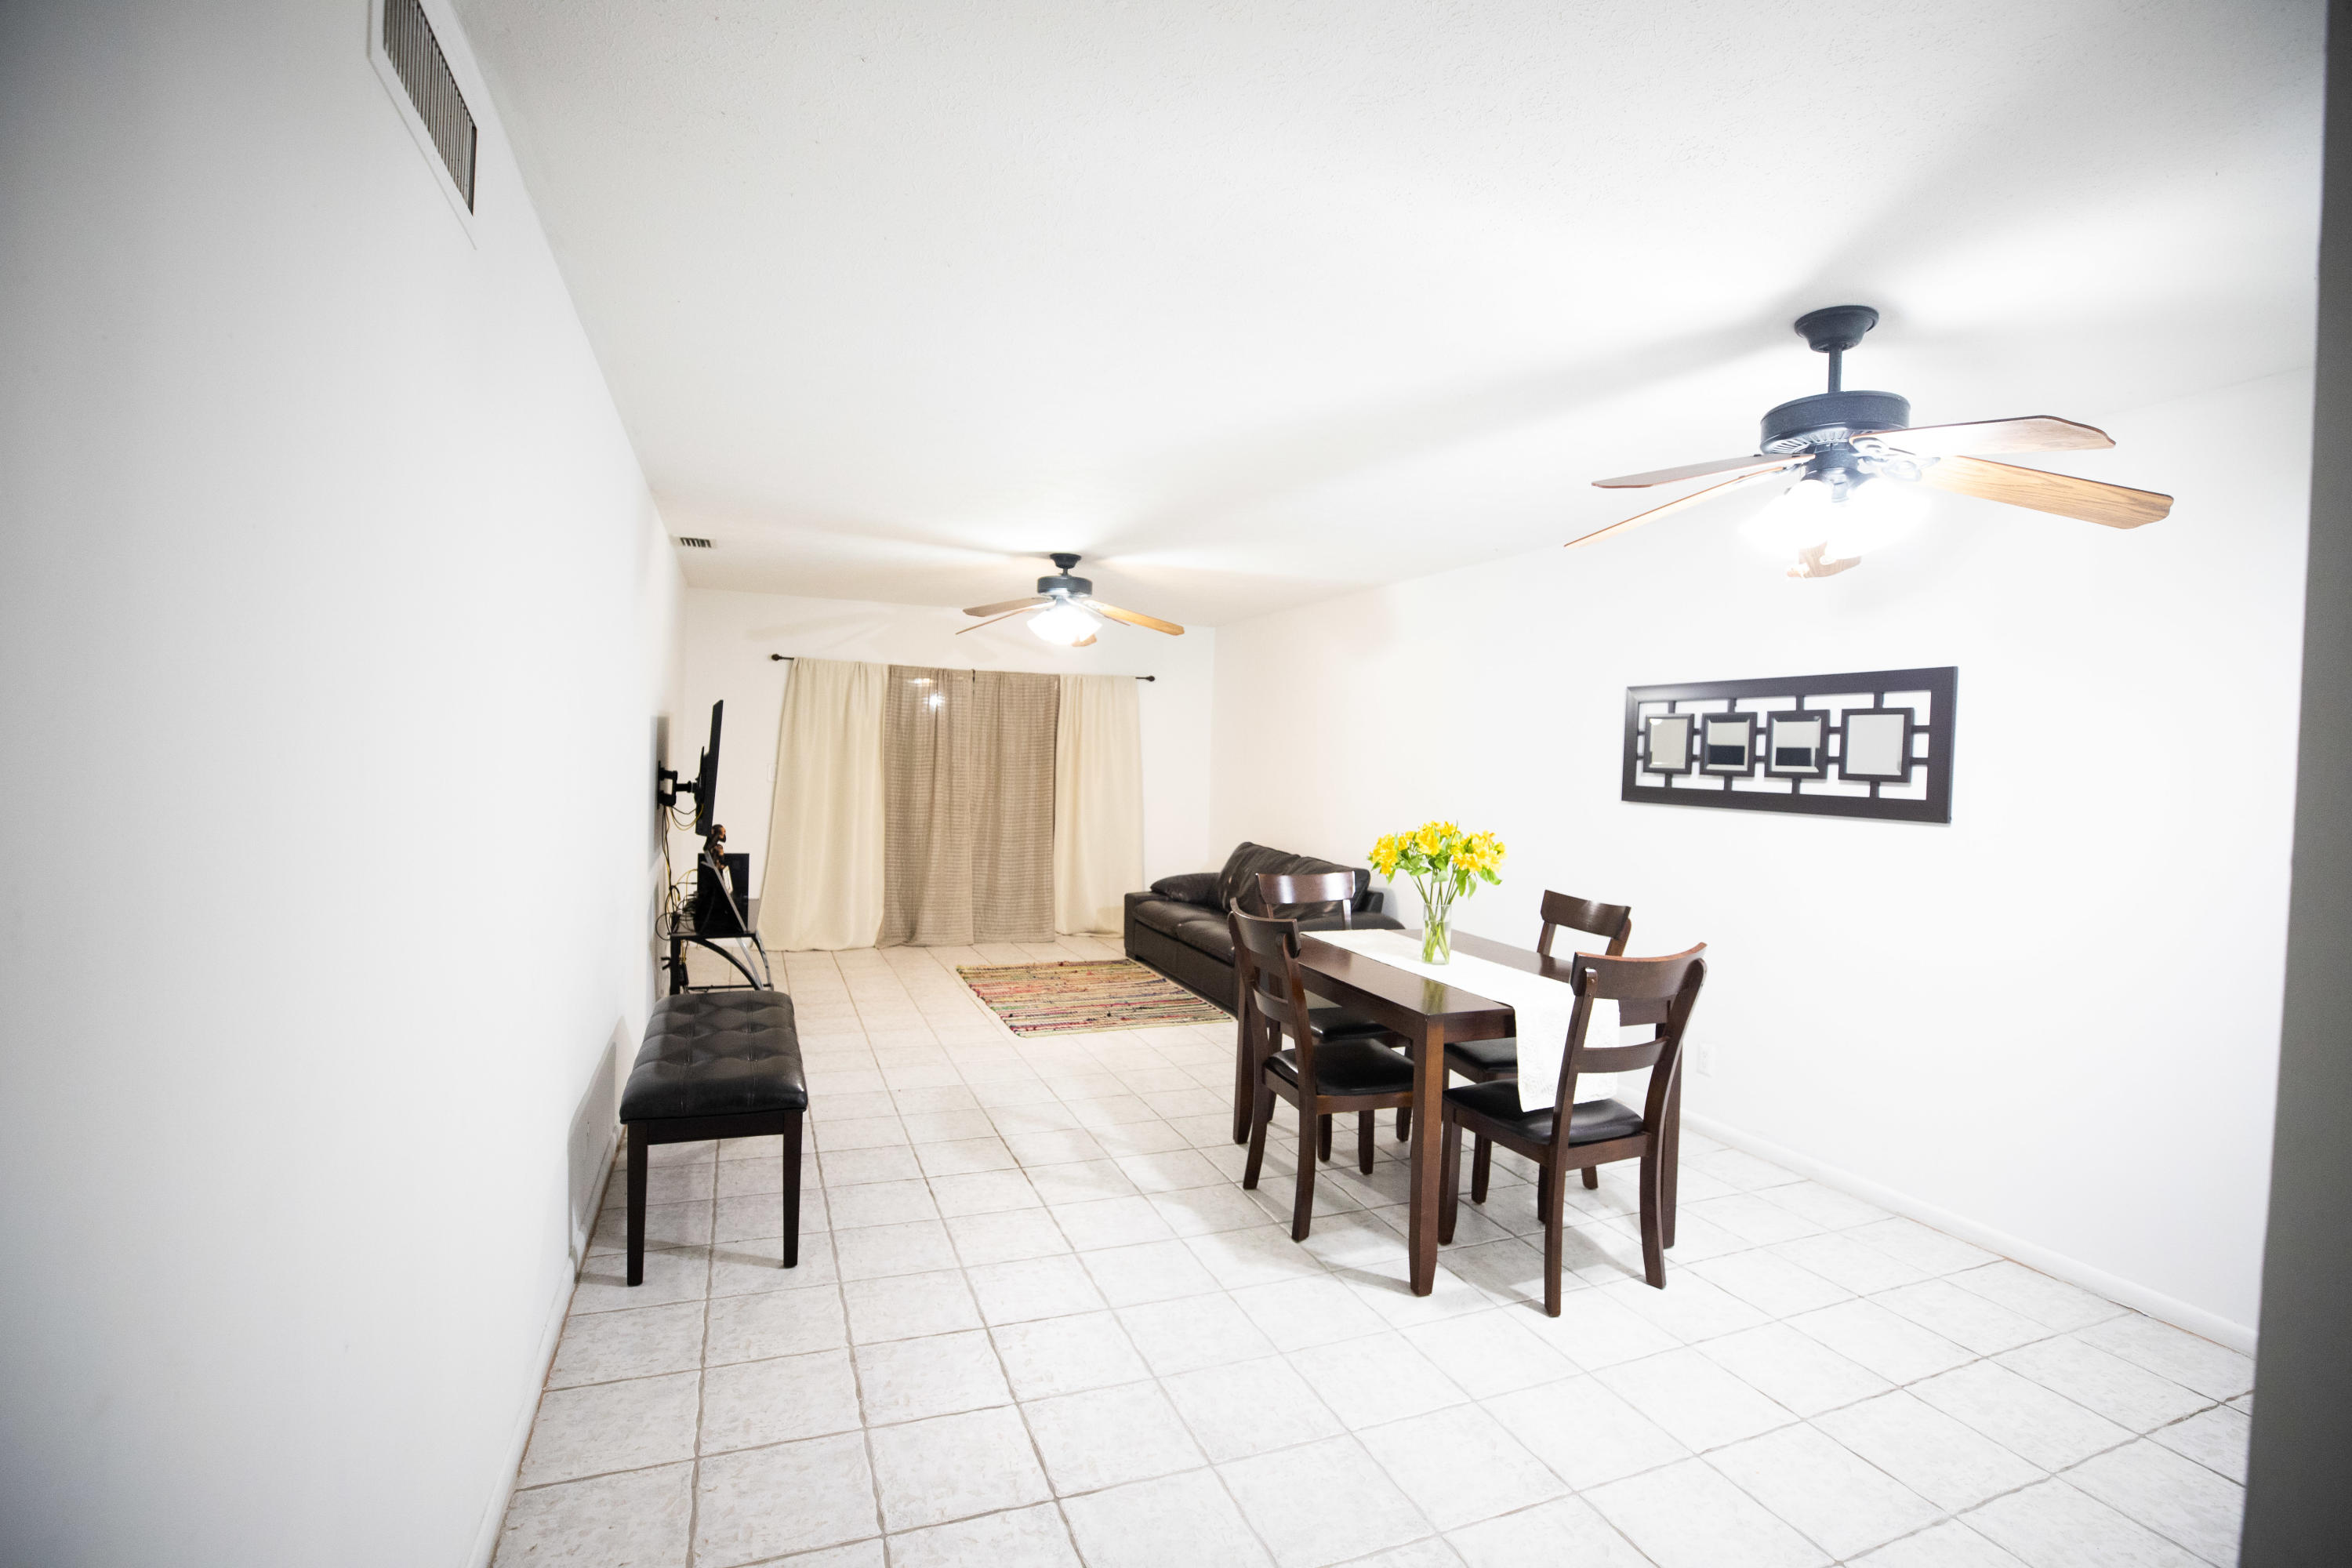 1200 Tallwood Avenue, Hollywood, Florida 33021, 2 Bedrooms Bedrooms, ,2 BathroomsBathrooms,Condo/Coop,For Sale,Tallwood,3,RX-10495545